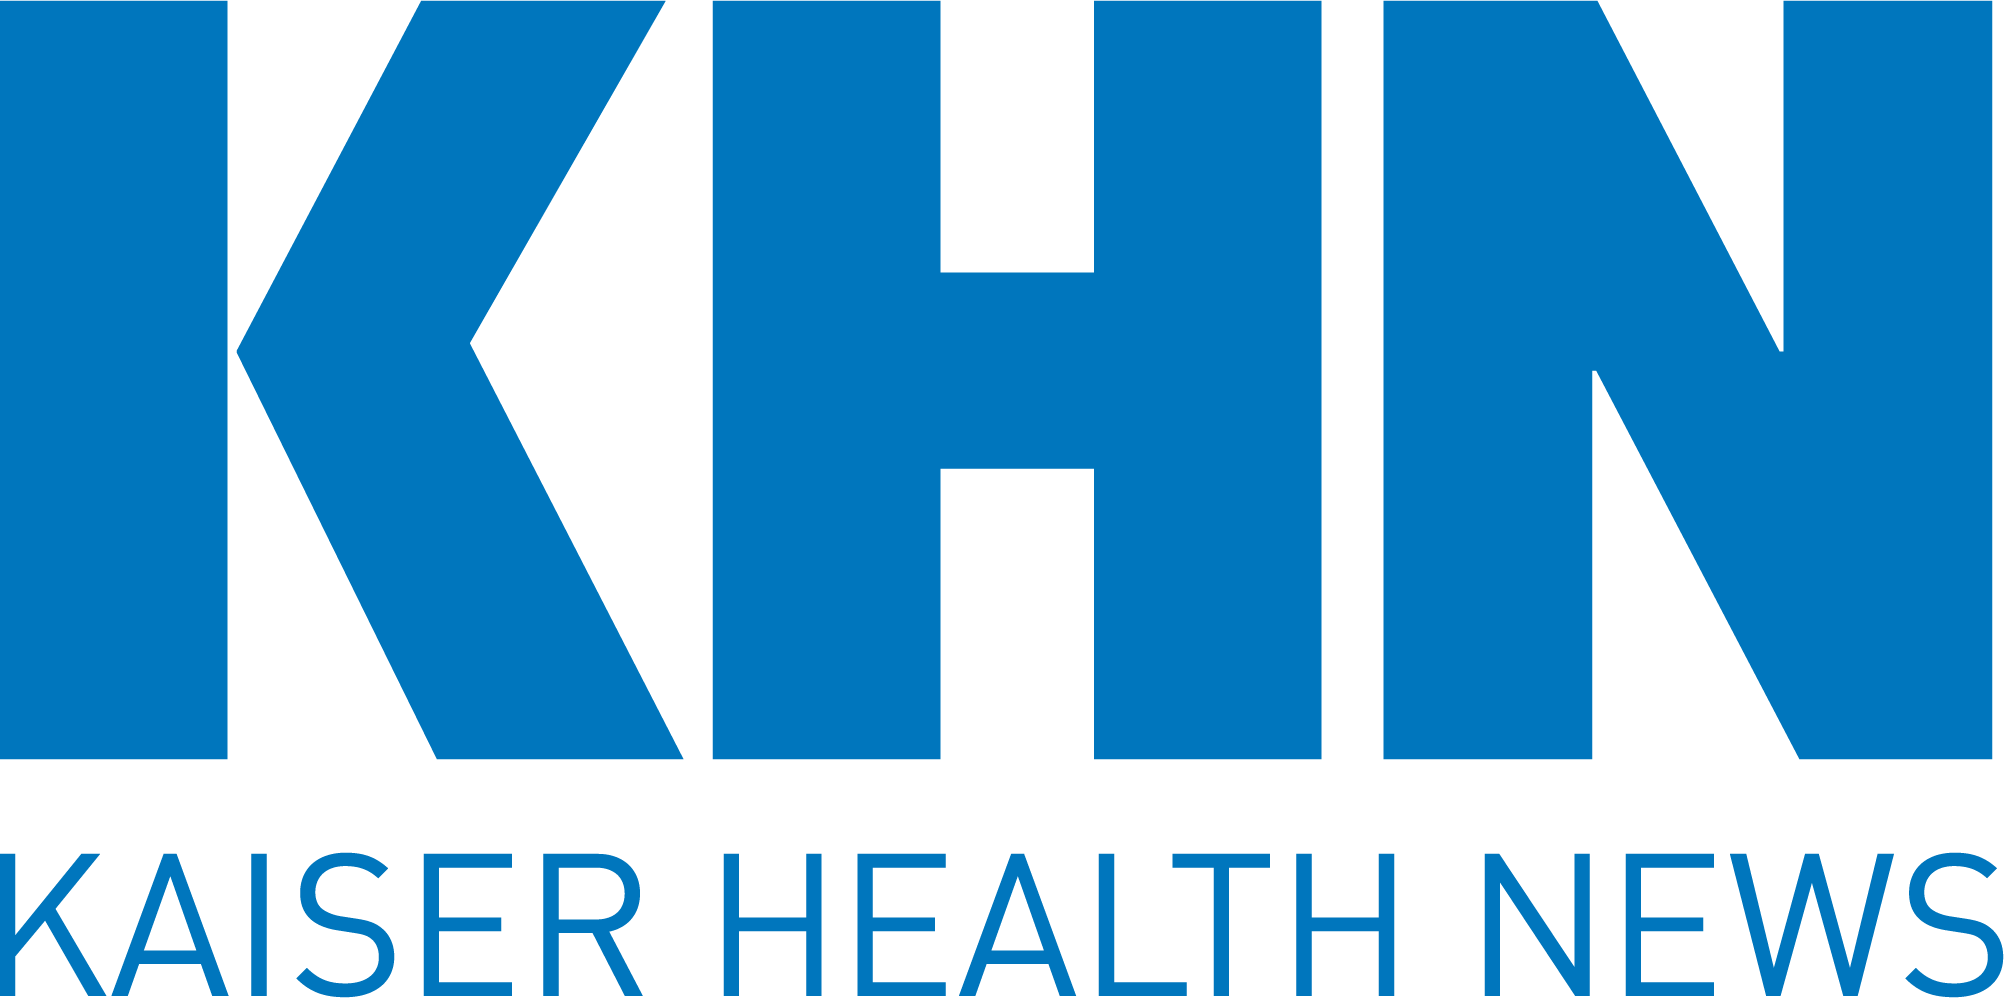 Health Policy Watch - Global Health News Reporting (@HealthPolicyW) -  Twitter